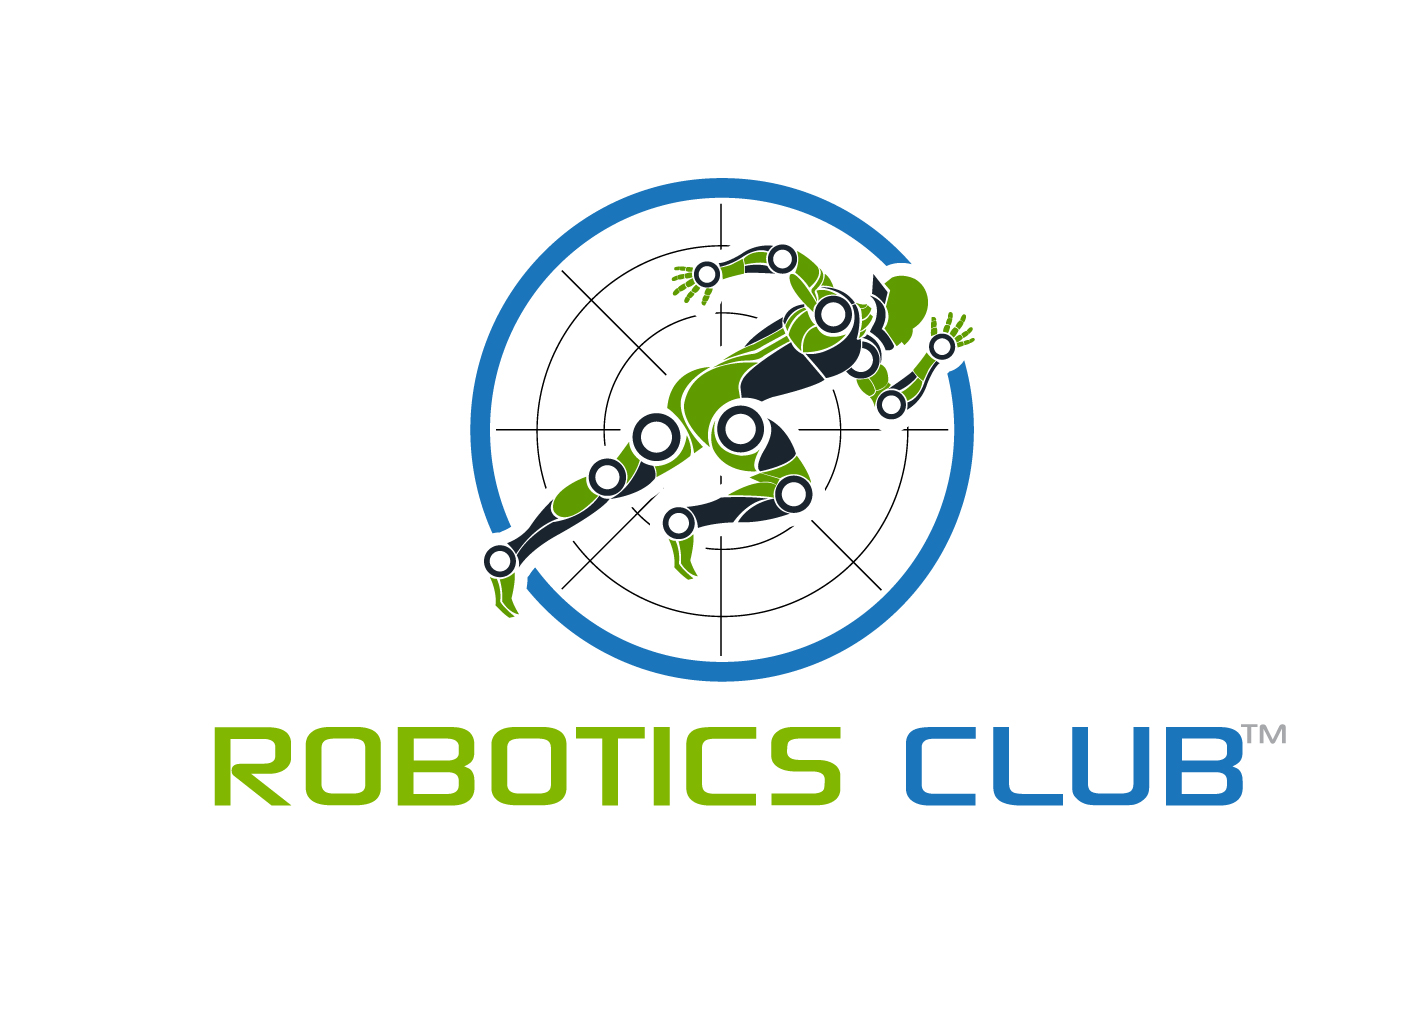 Professional Serious Club Logo Design For Robotics Club By Hih7